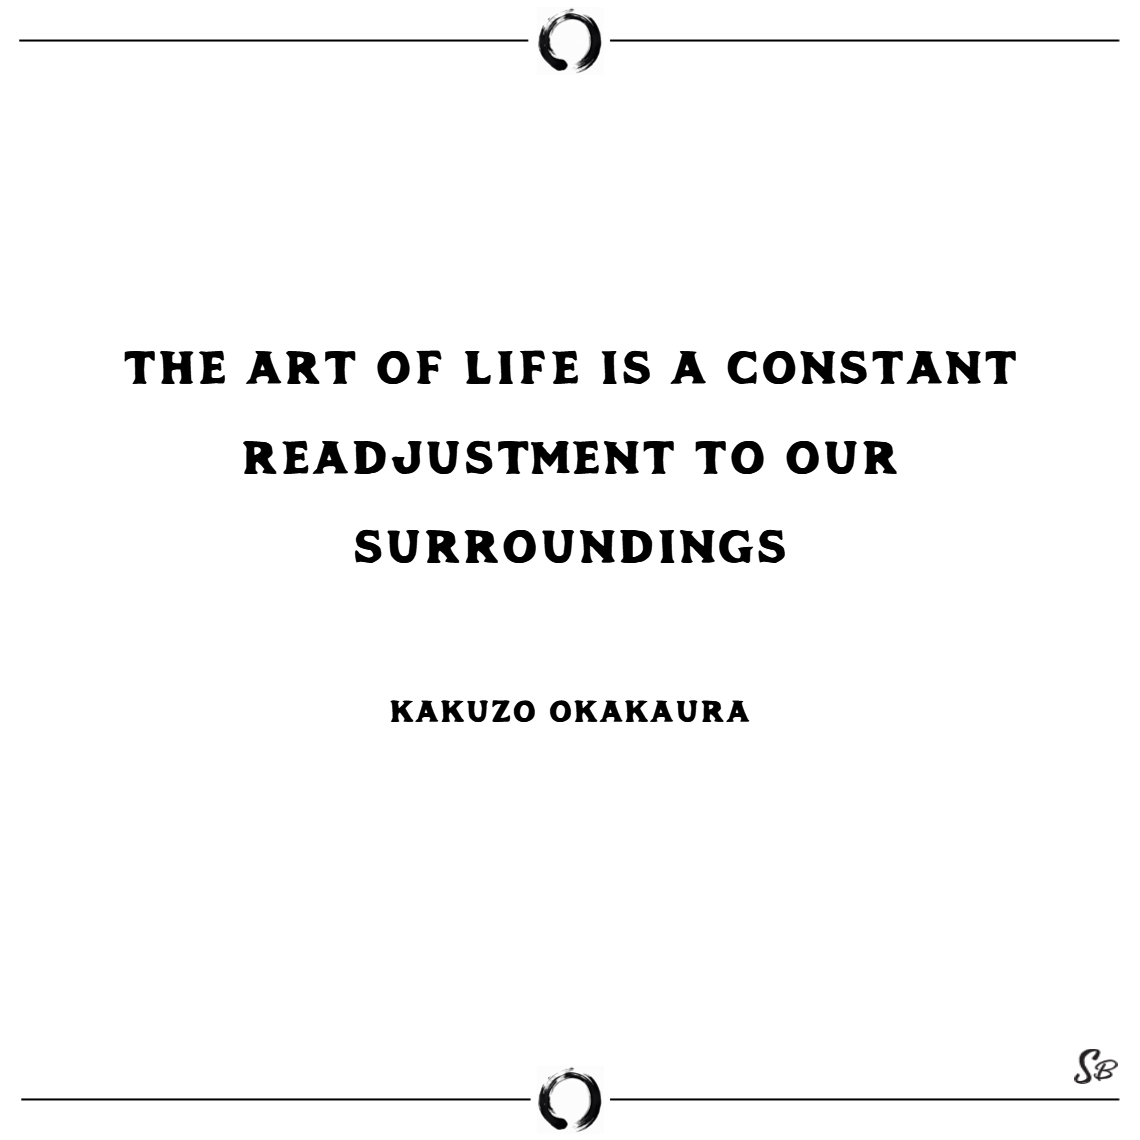 The art of life is a constant readjustment to our surroundings. – kakuzo okakaura